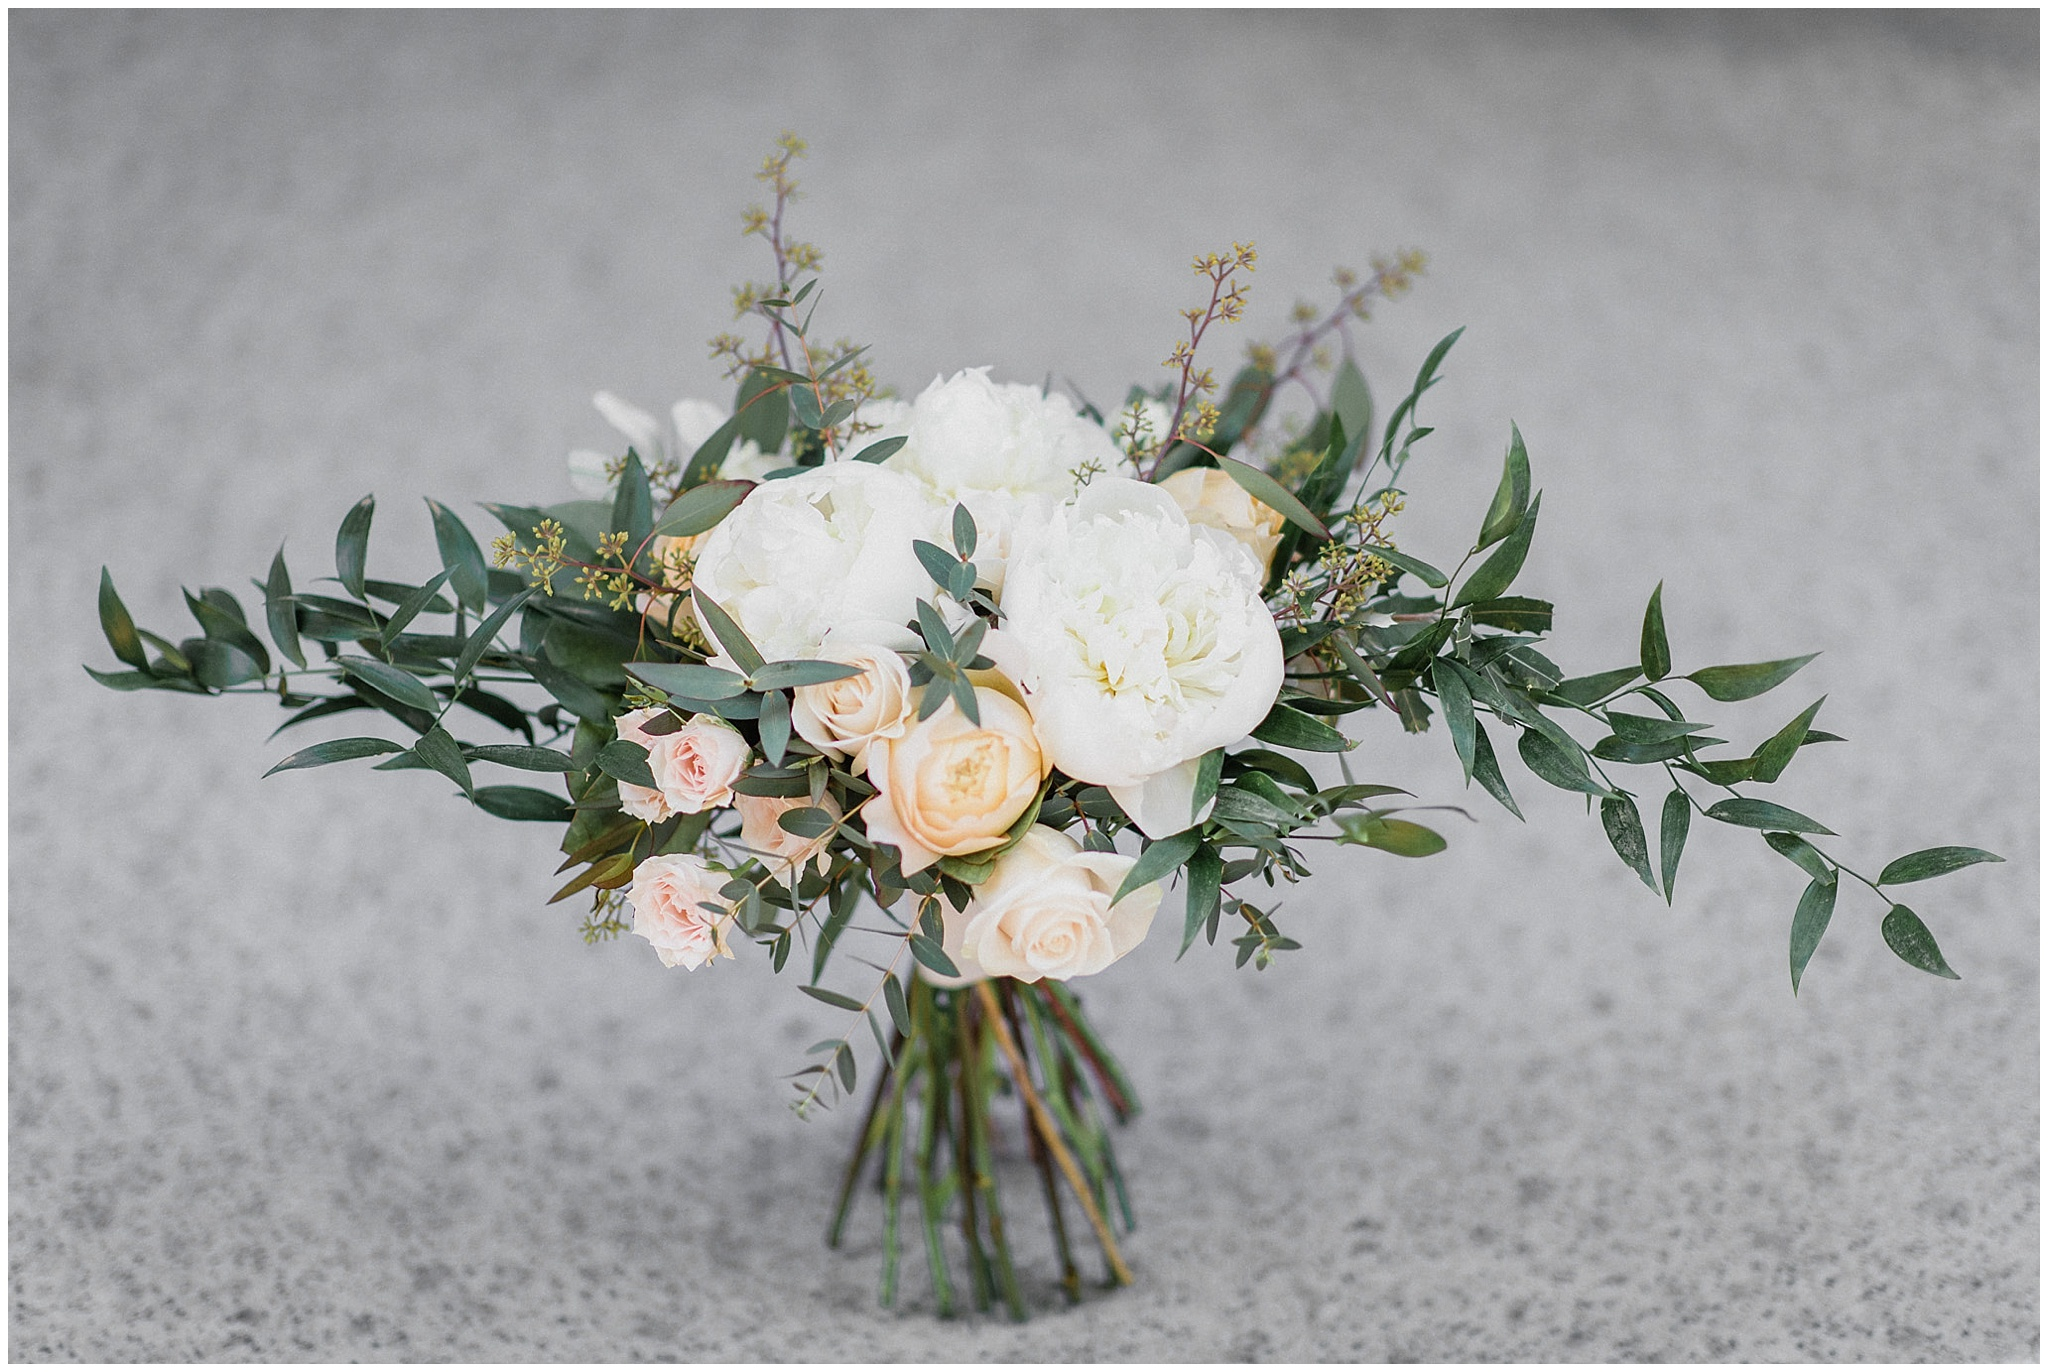 Hand tied rustic florals for the bride's bouquet | Tent wedding on family farm in Guelph, Ontario by Jenn Kavanagh Photography